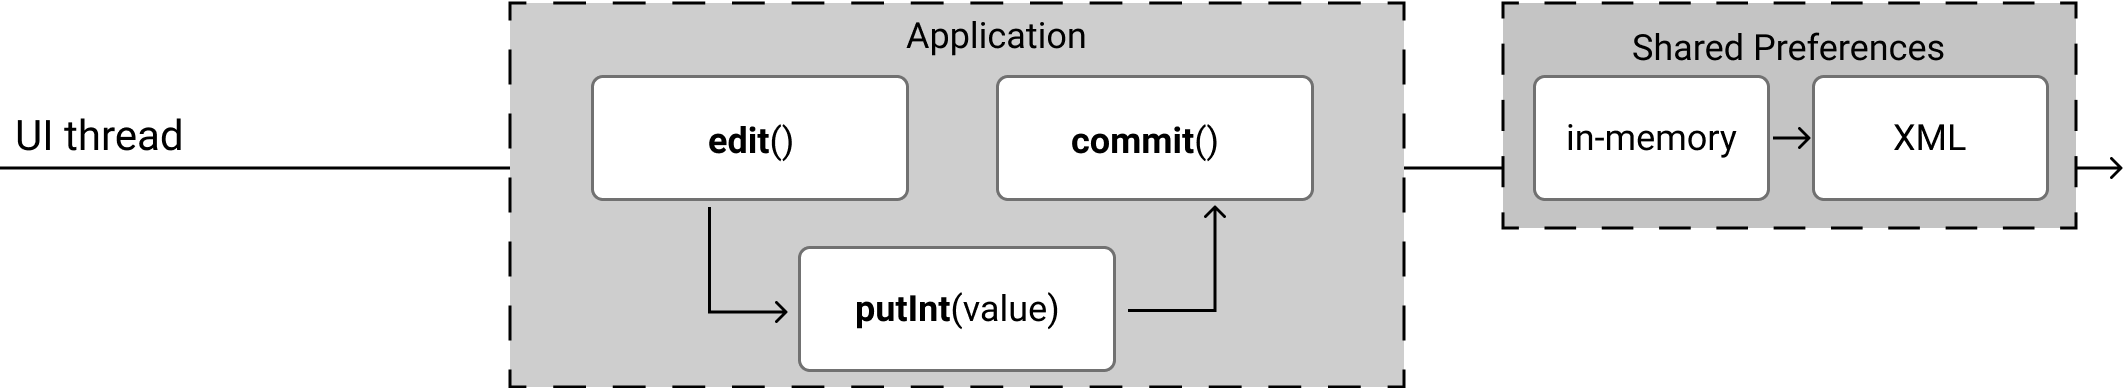 commit() function